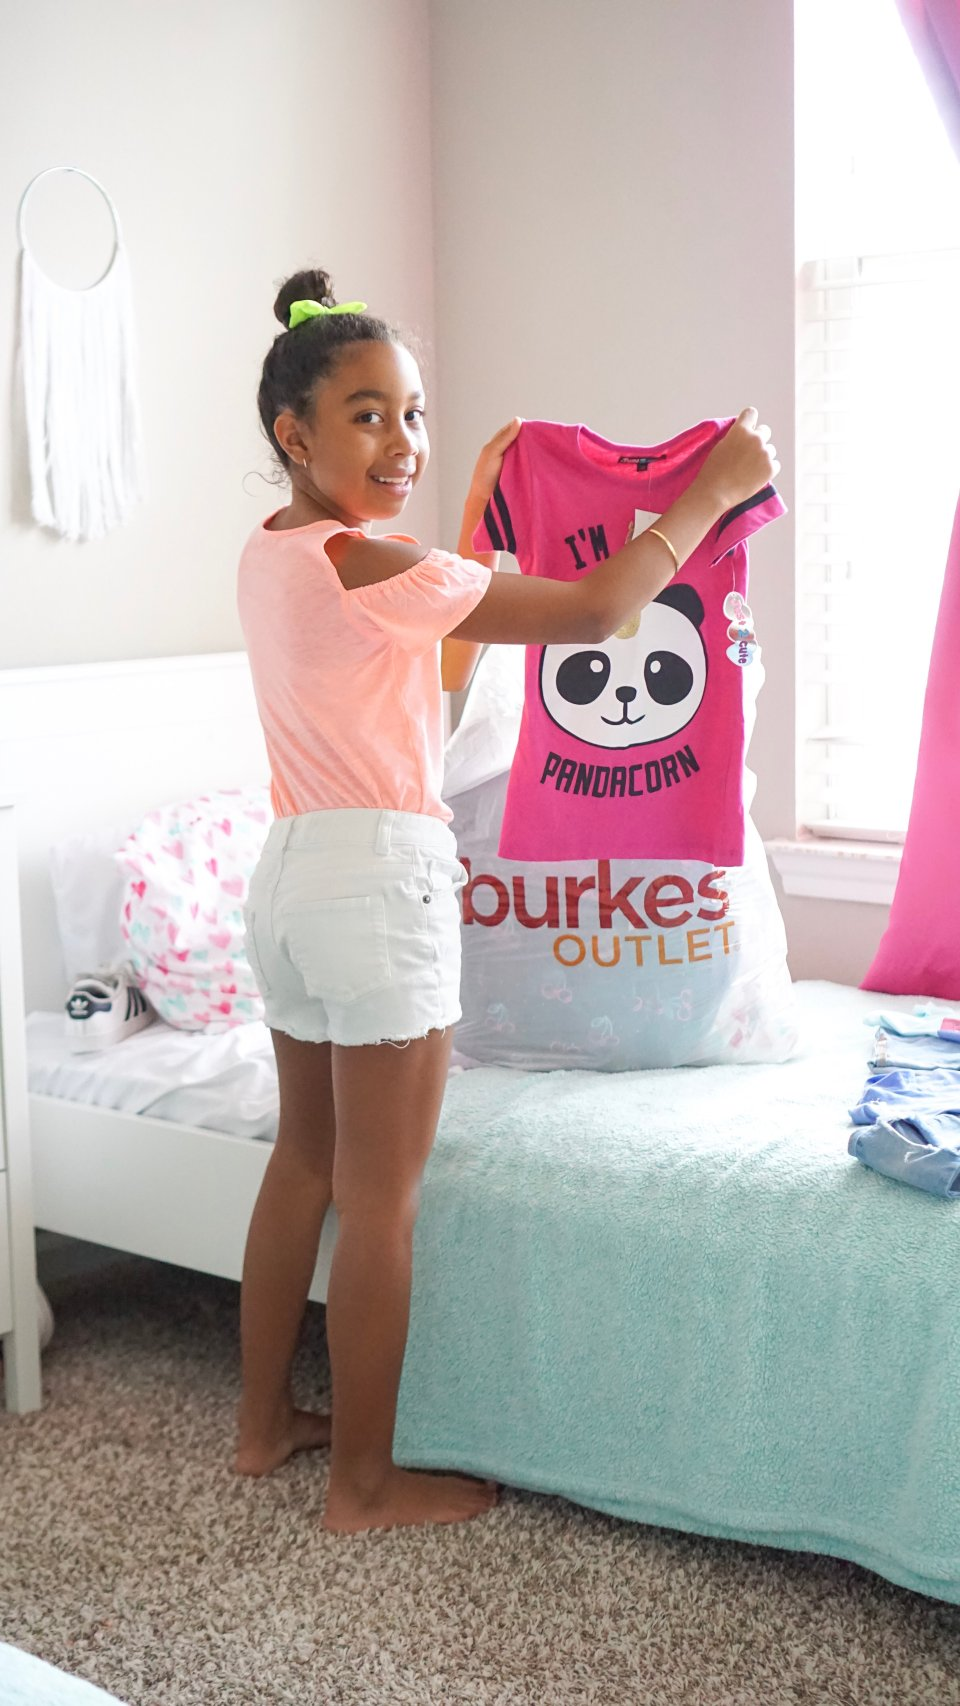 Back to School Shopping and Trendy Finds at Burkes Outlets